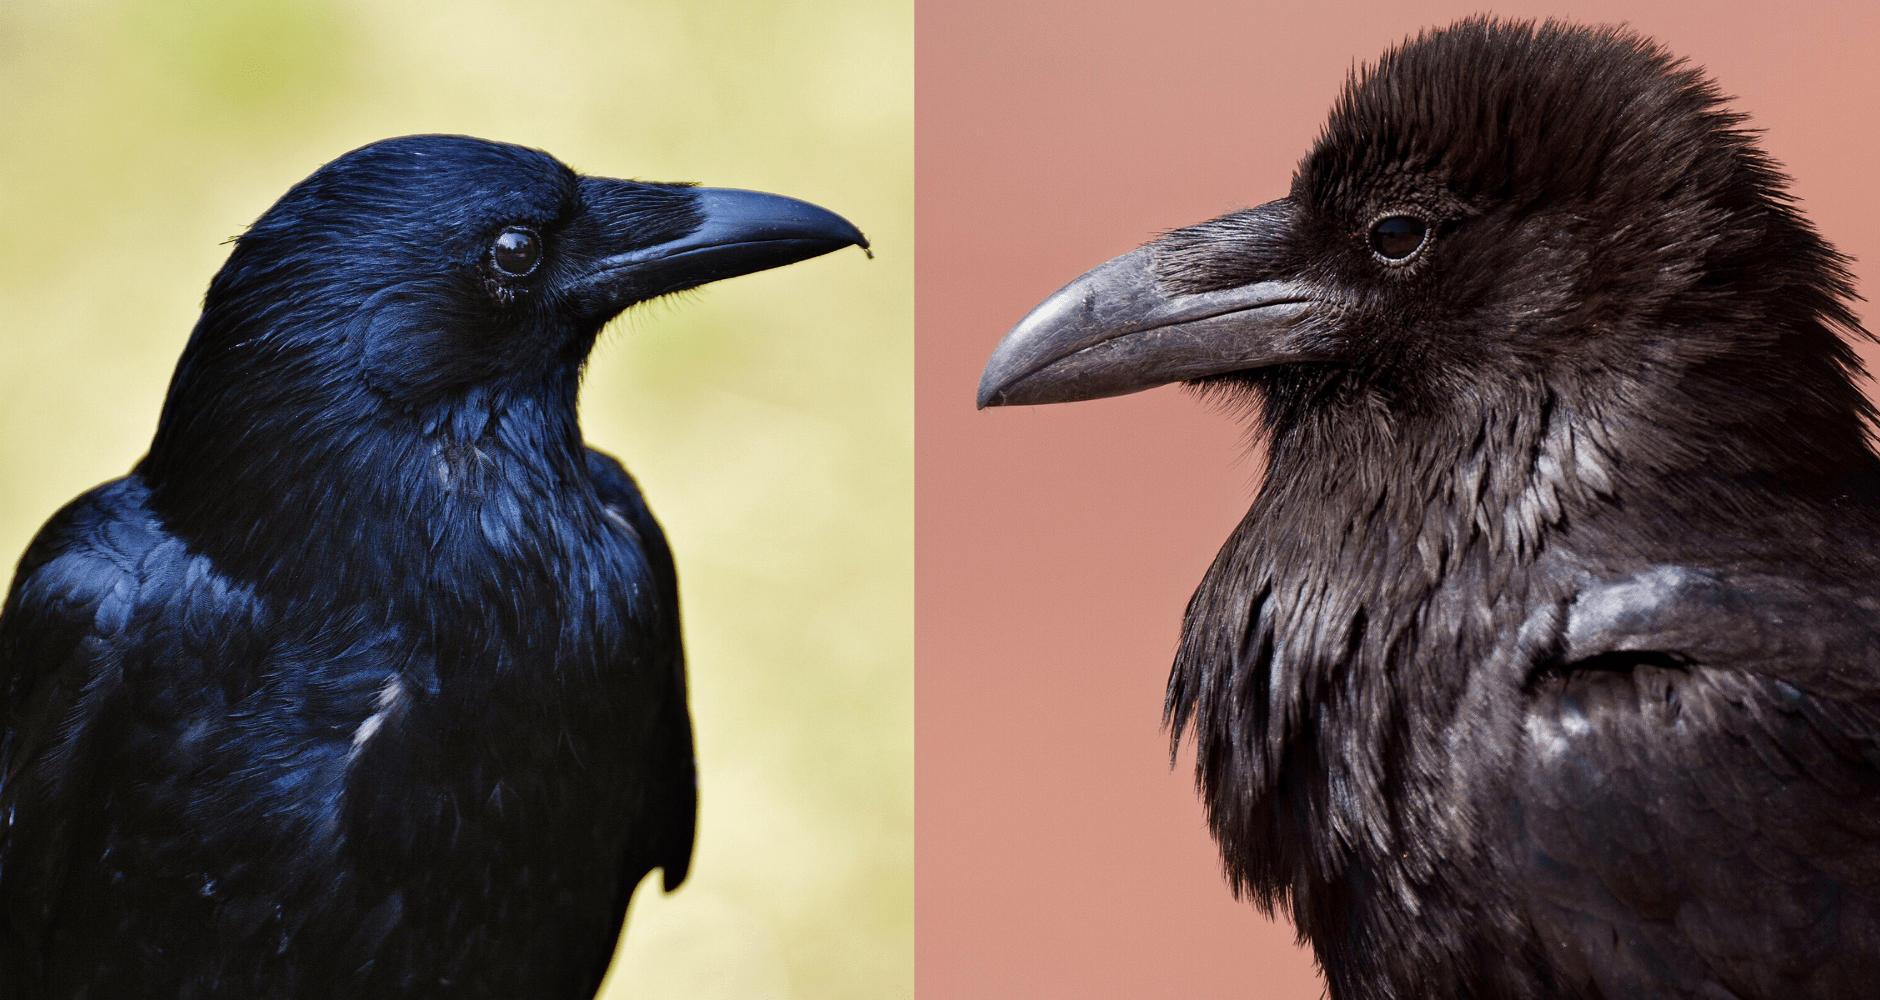 american crow and common raven side by side comparison